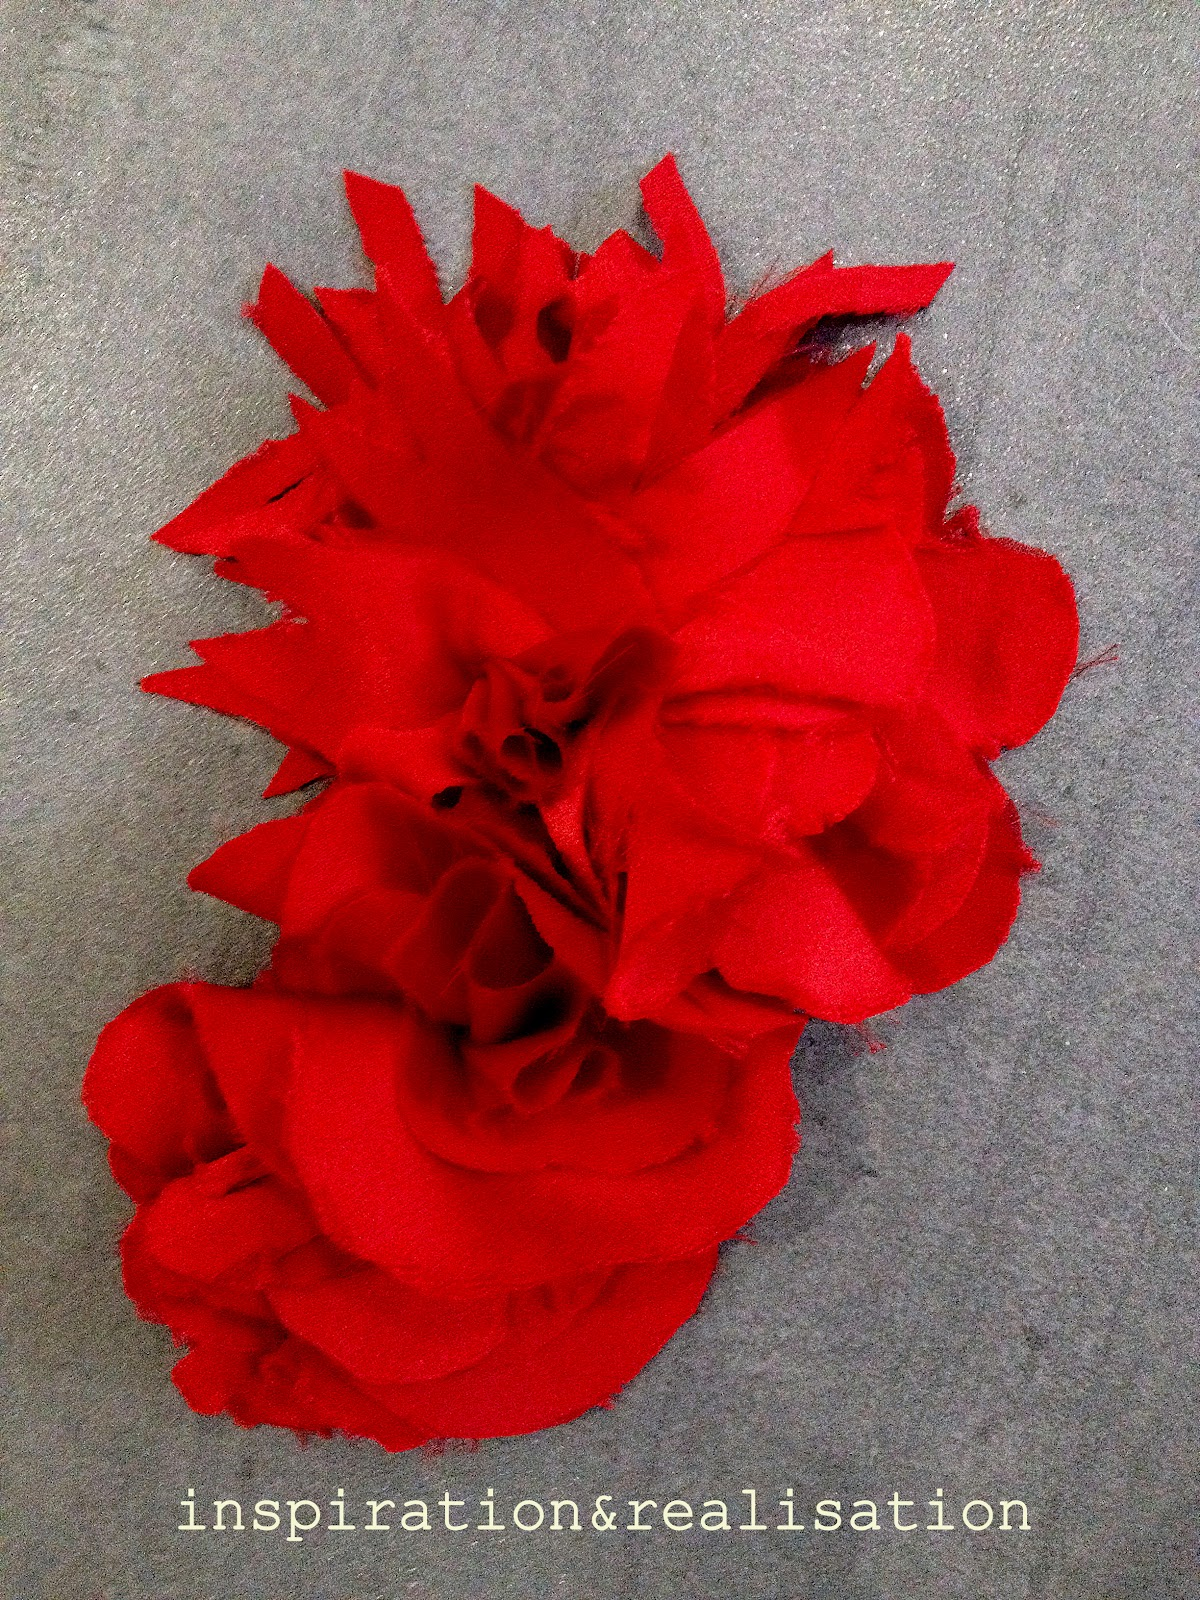 Inspiration and realisation diy fashion blog diy corsage fabric worn as a fashion accessory mightylinksfo